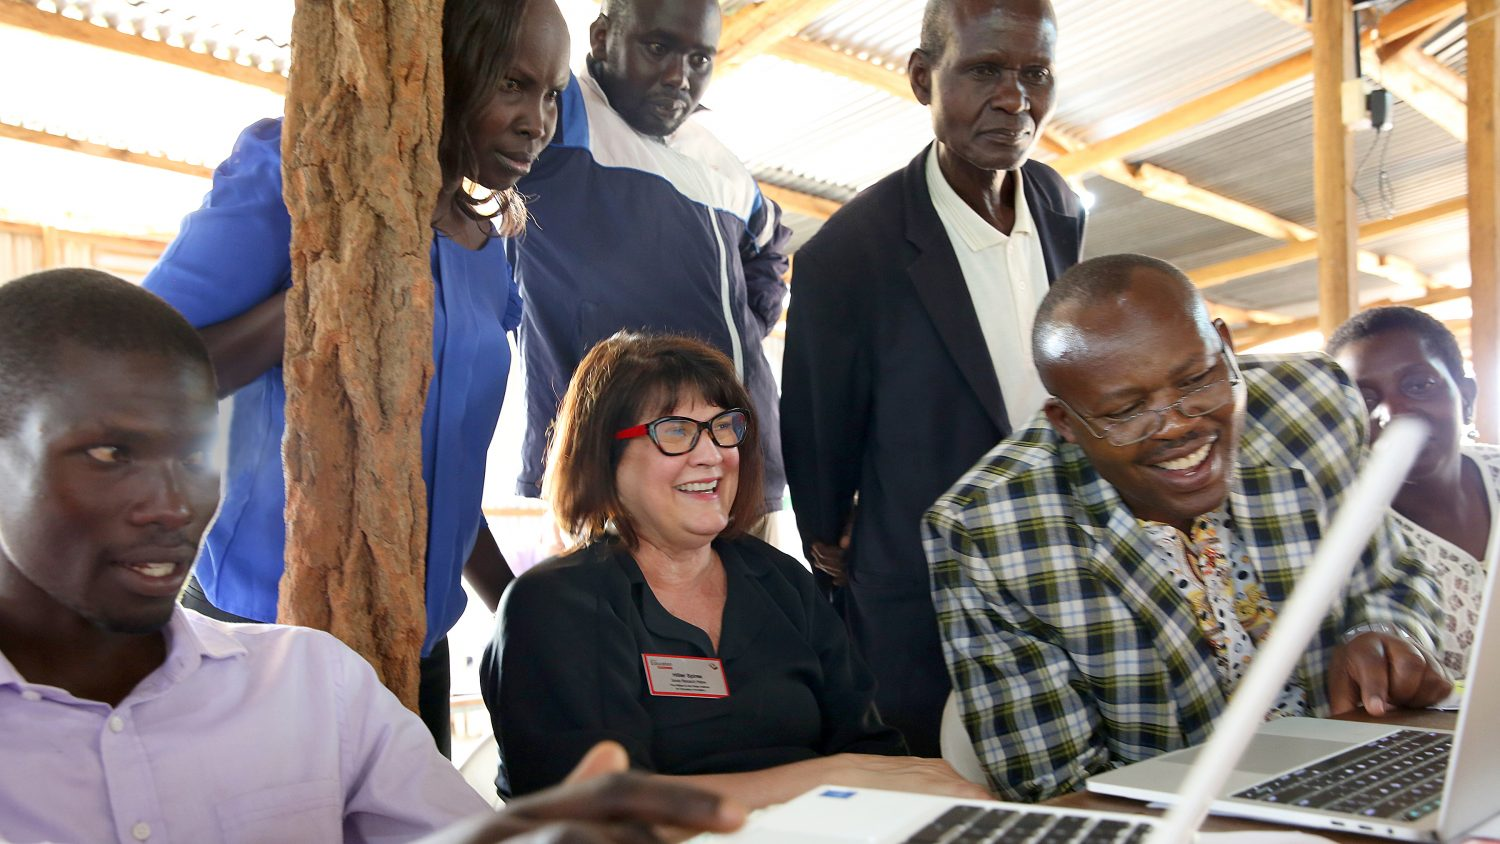 A photo of Dr. Hiller Spires and Kenyan educators at computers